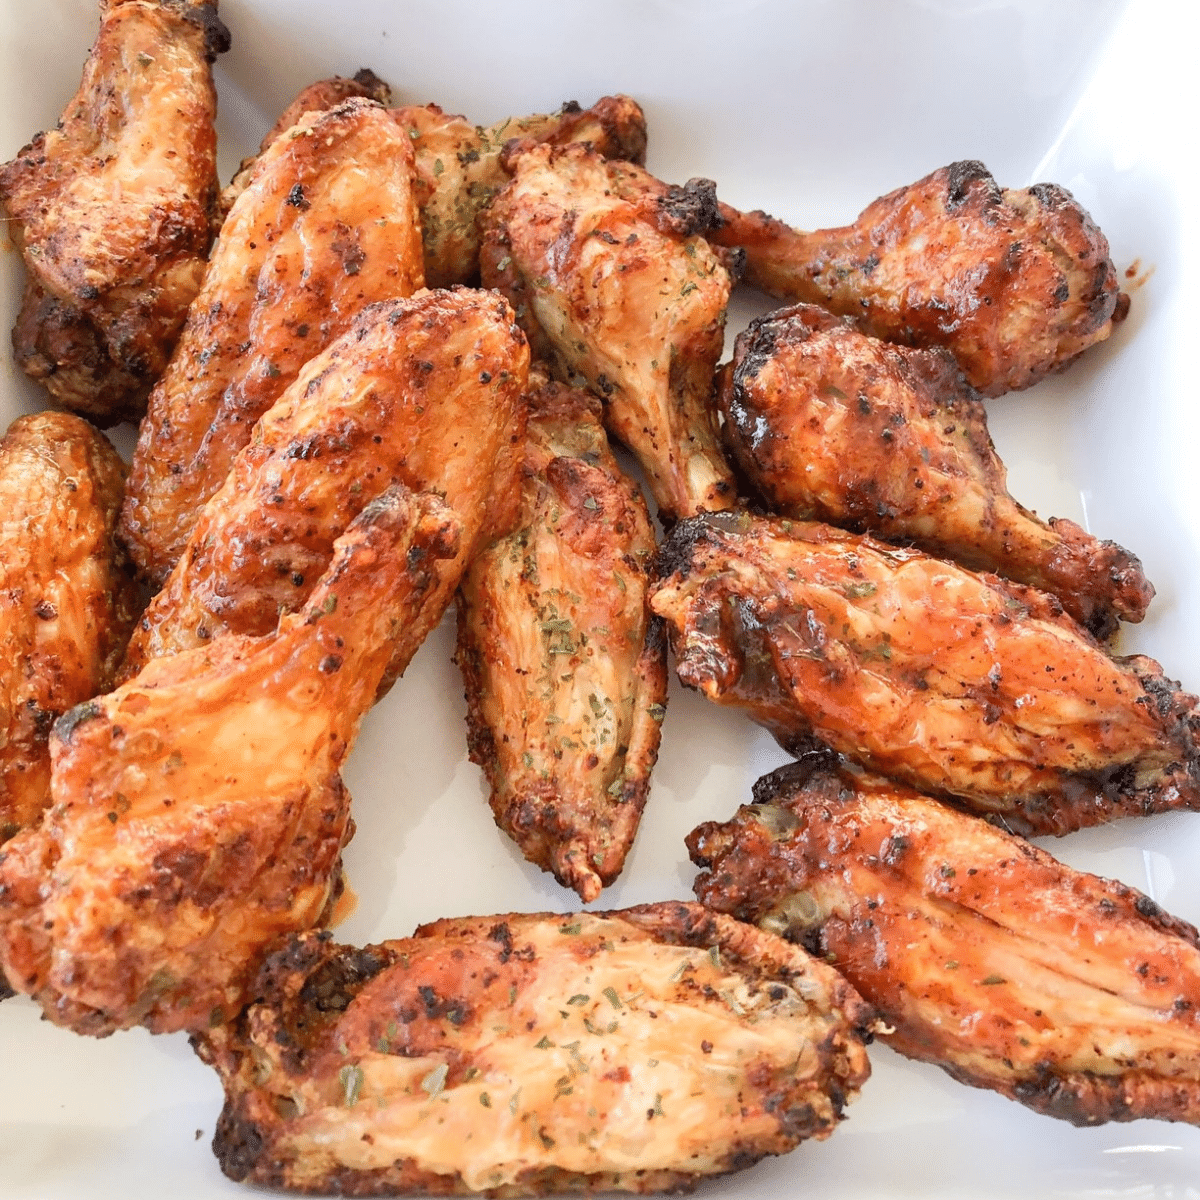 Extra crispy air fryer chicken wings served on a white platter